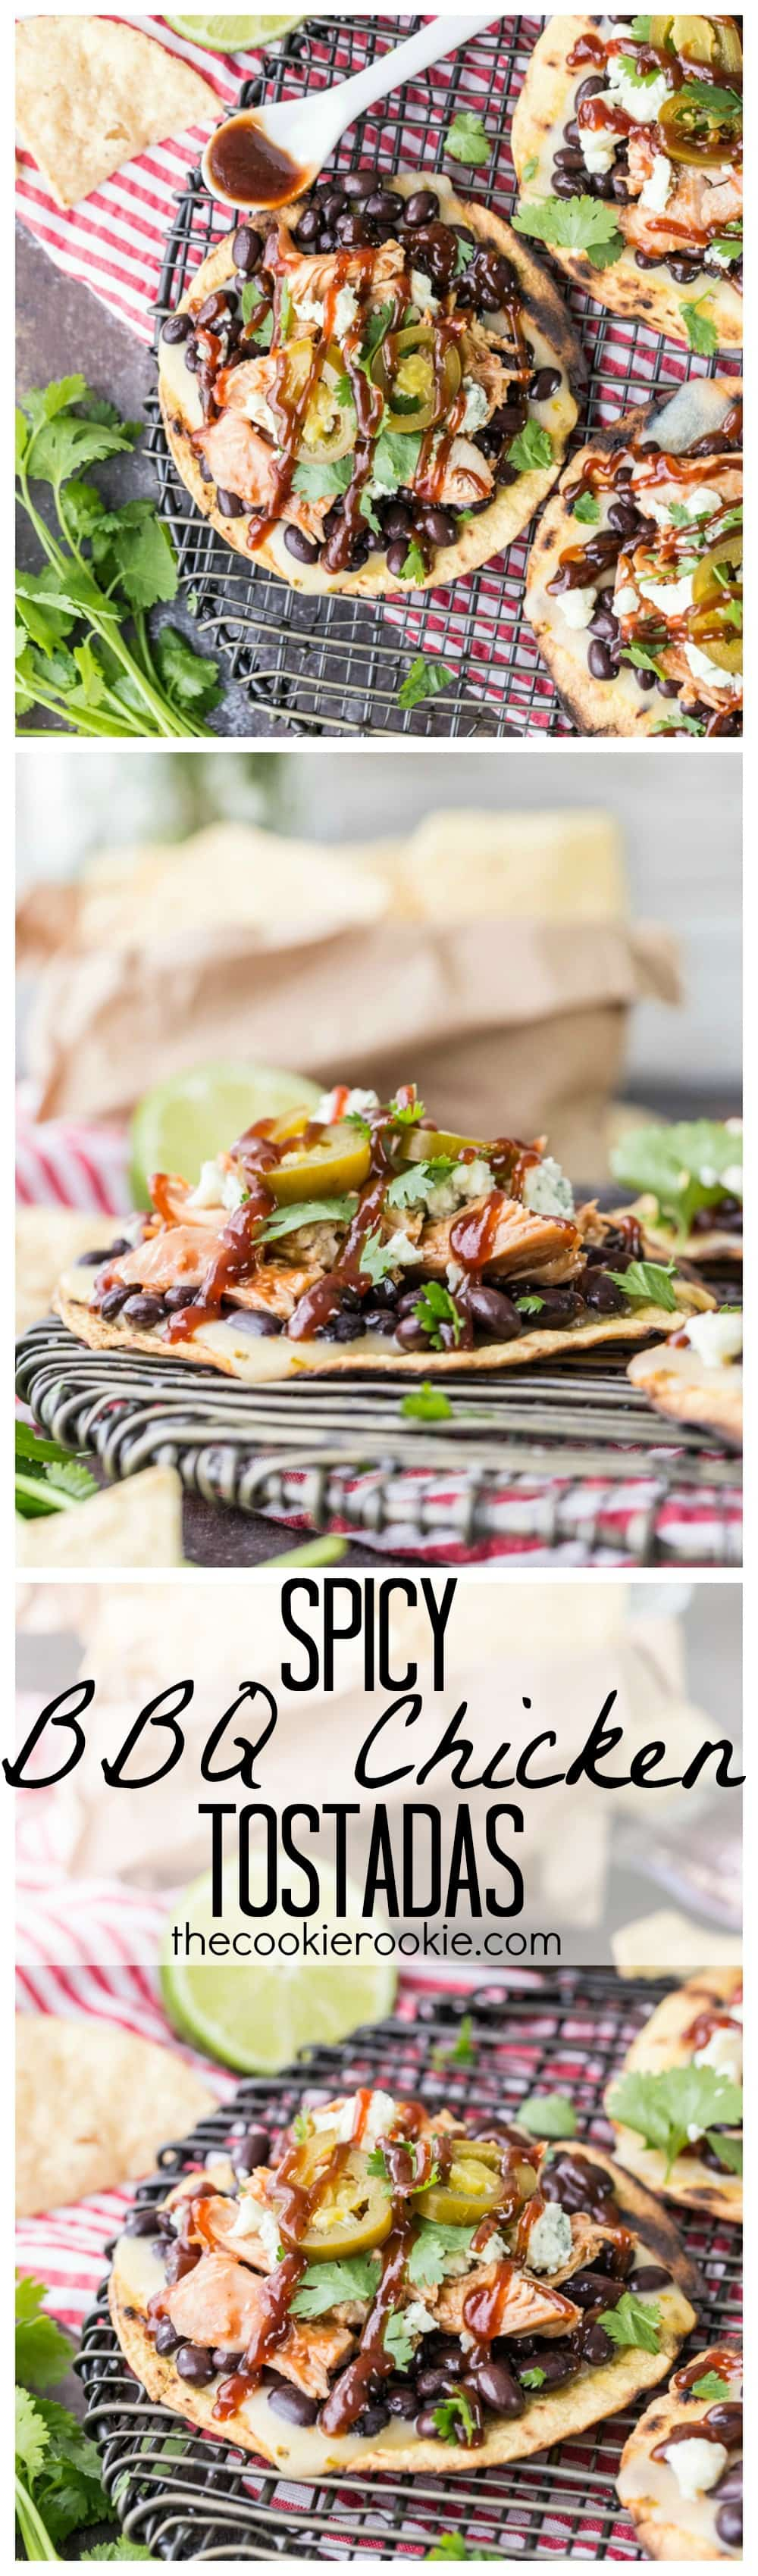 Spicy BBQ Chicken Tostadas, the perfect EASY Summer meal on the grill or inside in the broiler. Black beans, chicken, jalapeños, cilantro, cheese, and of course BBQ sauce! Adults and children ALL LOVE THESE!